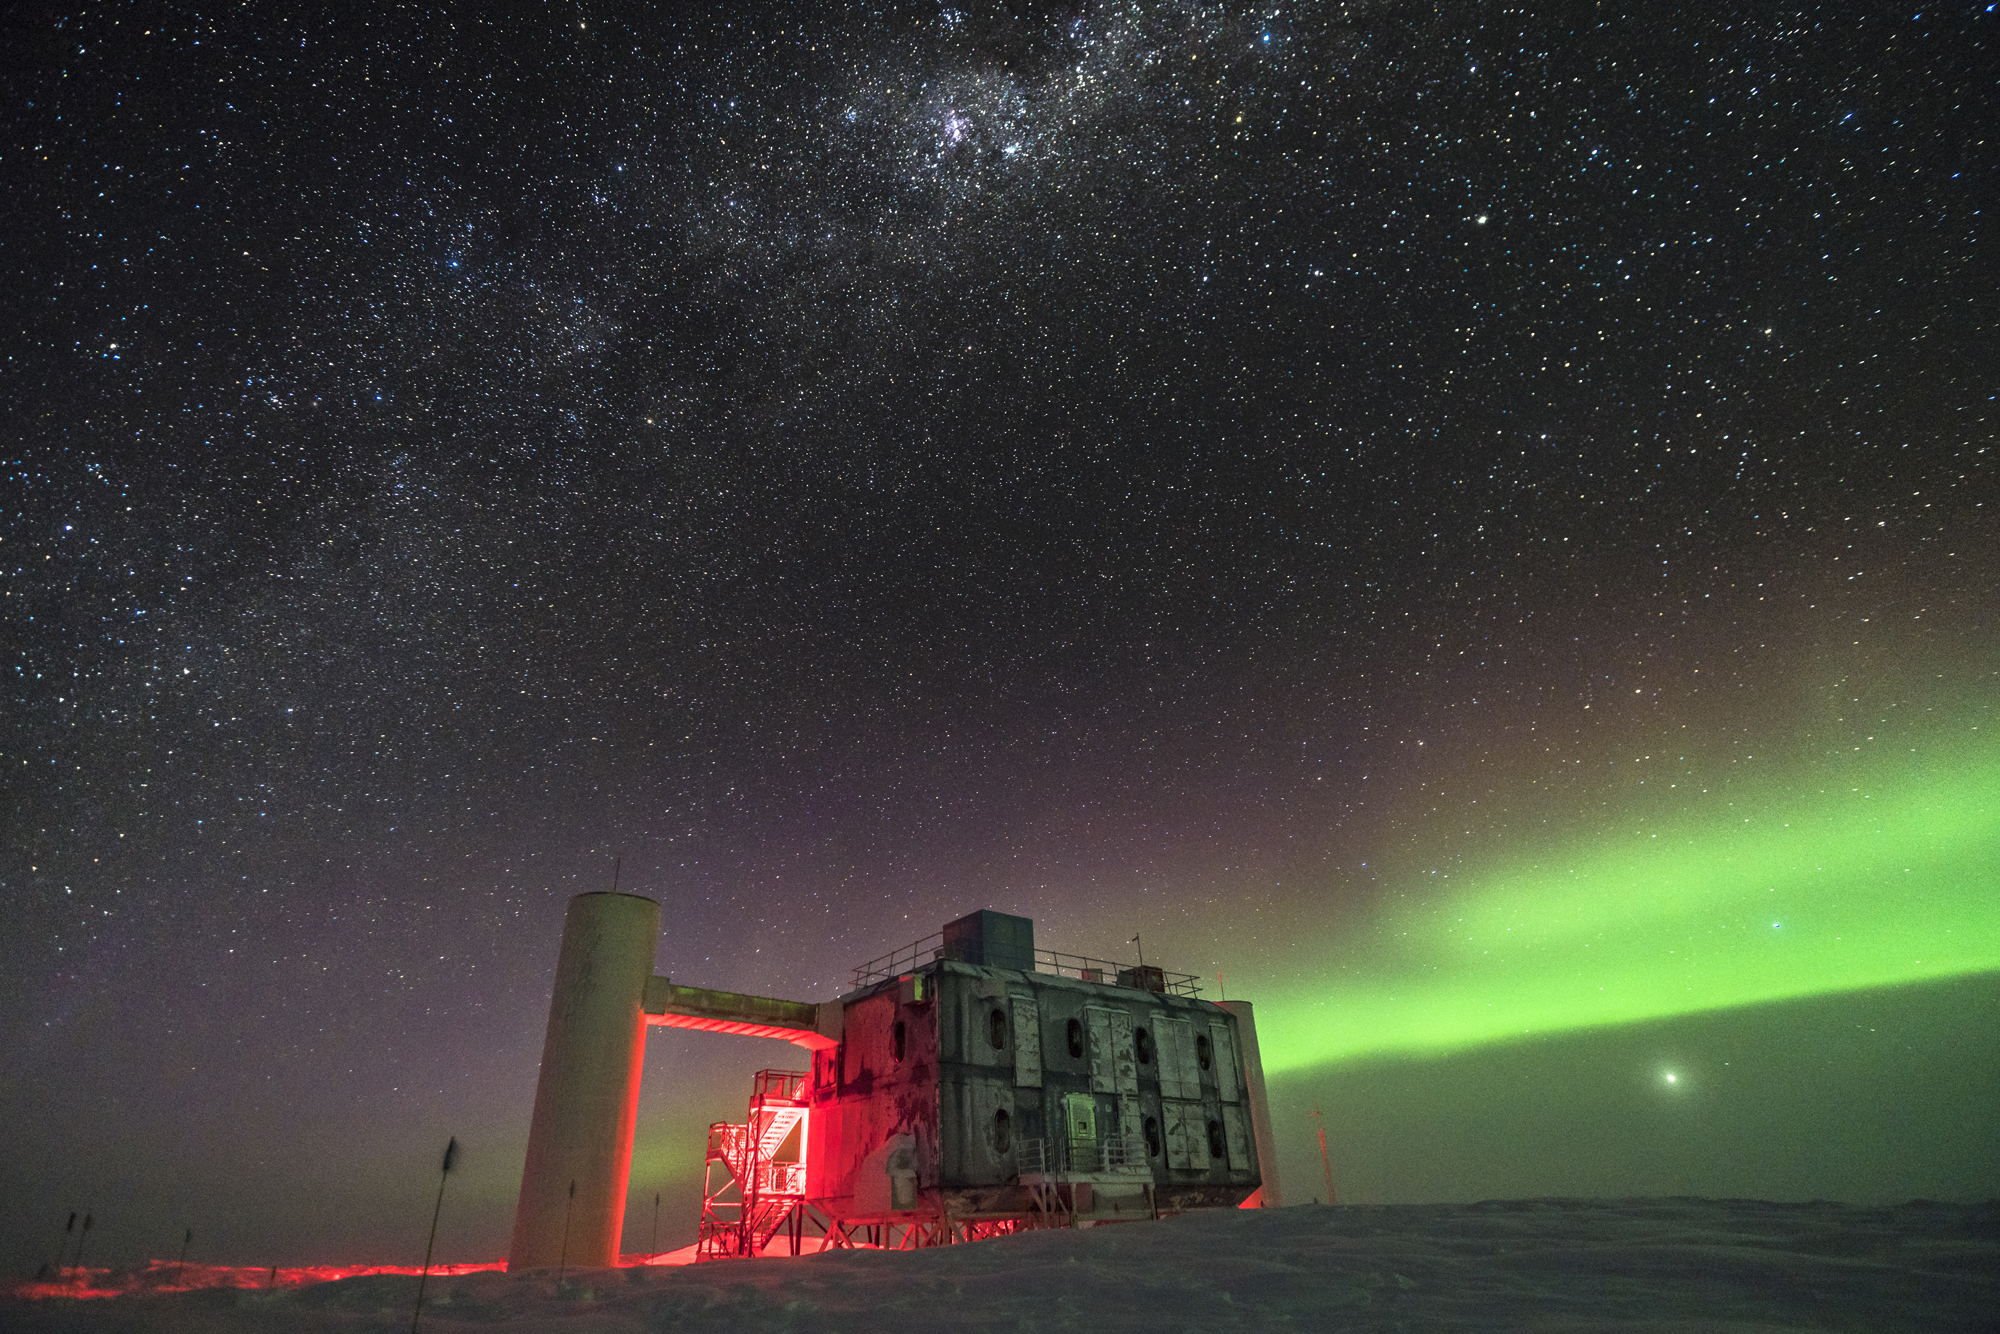 Photo of the IceCube Laboratory at the Amundsen-Scott South Pole Station, in Antarctica.